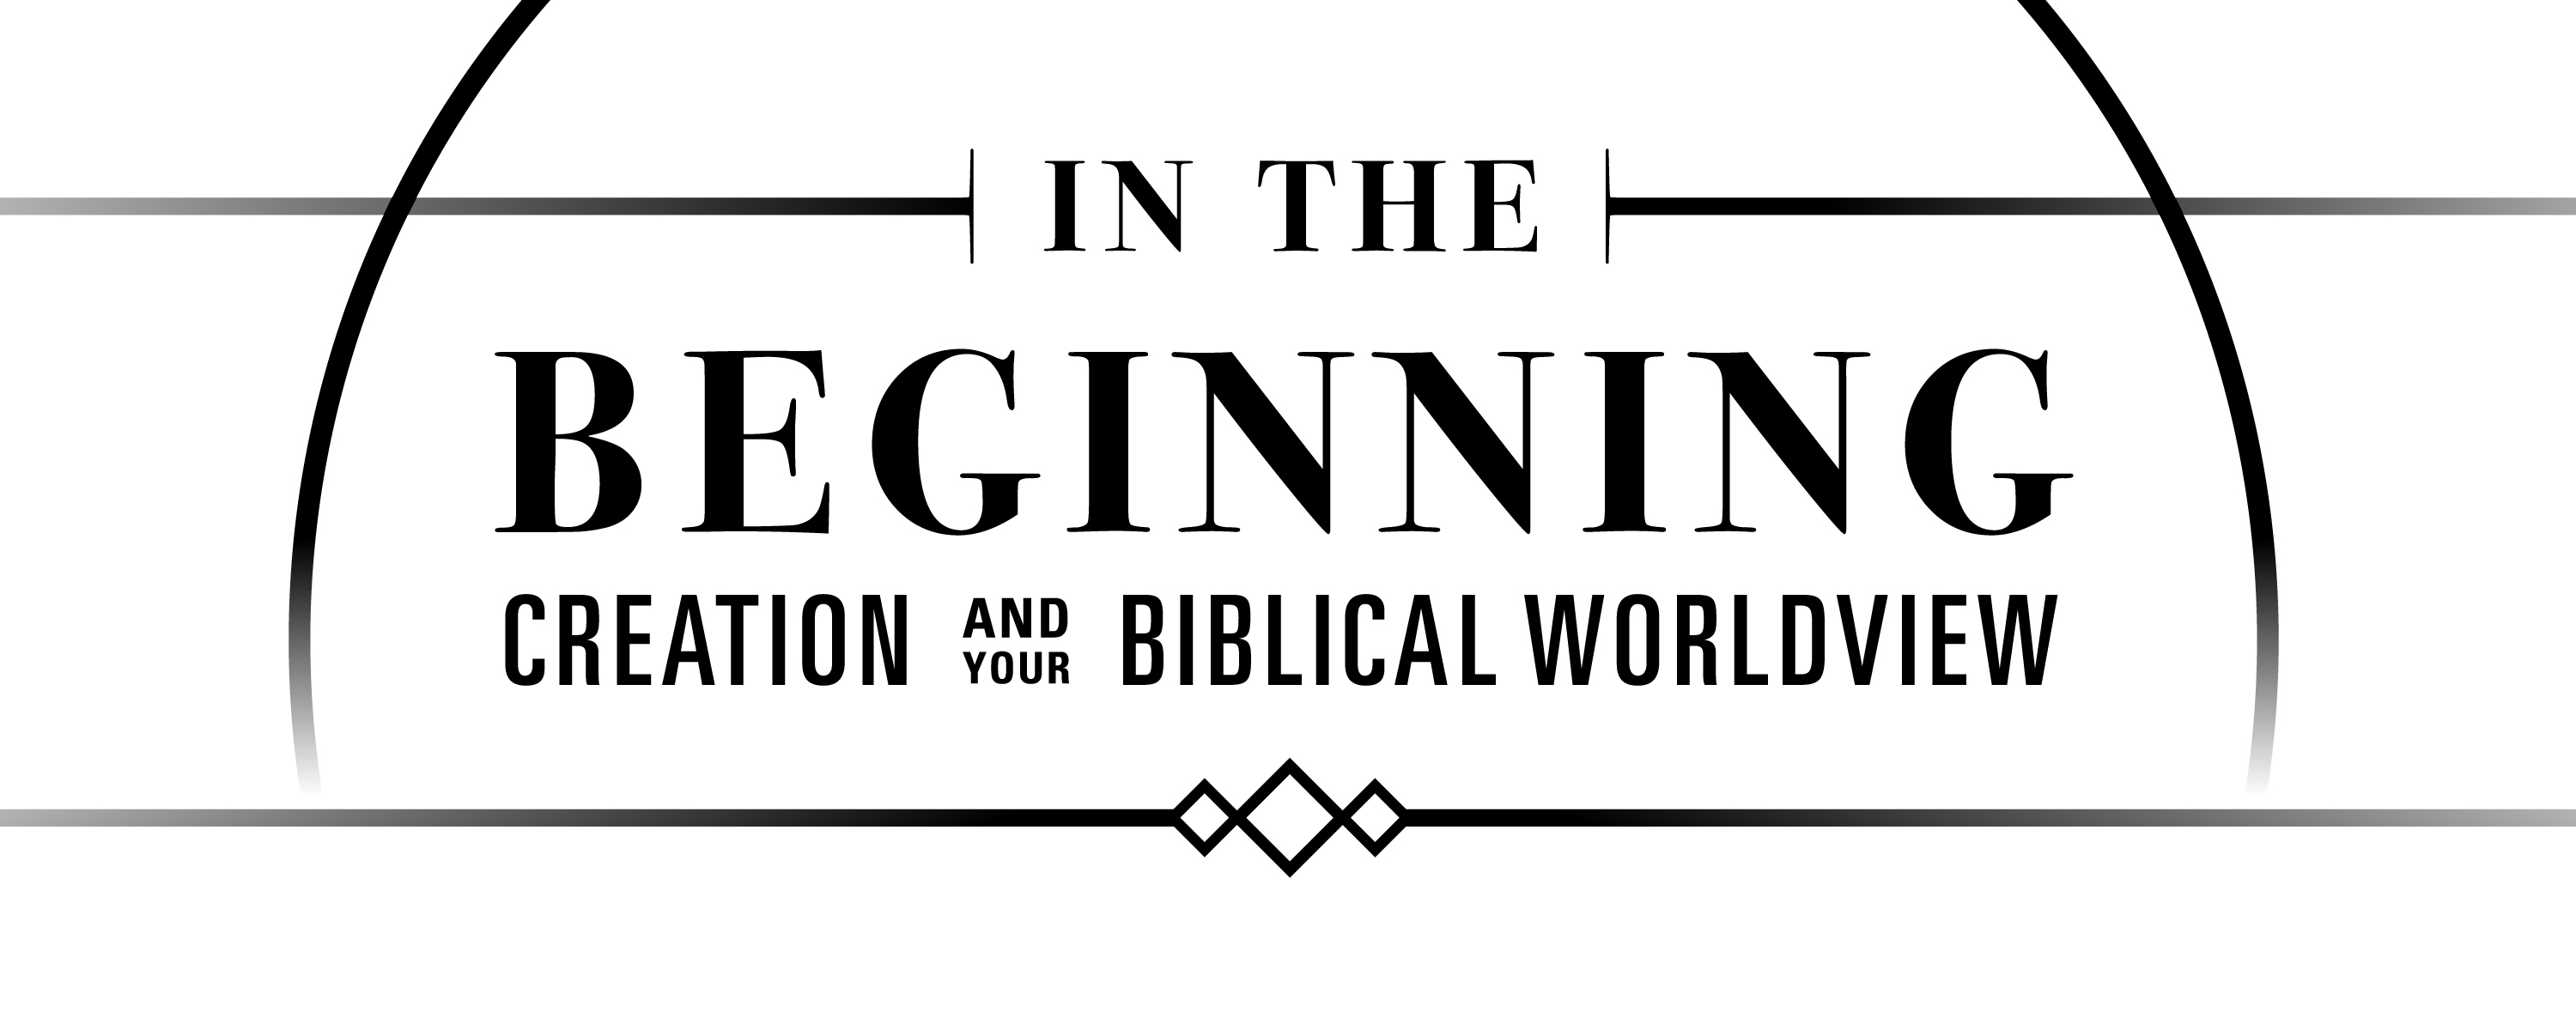 in the beginning creation and your biblical worldview event event logo